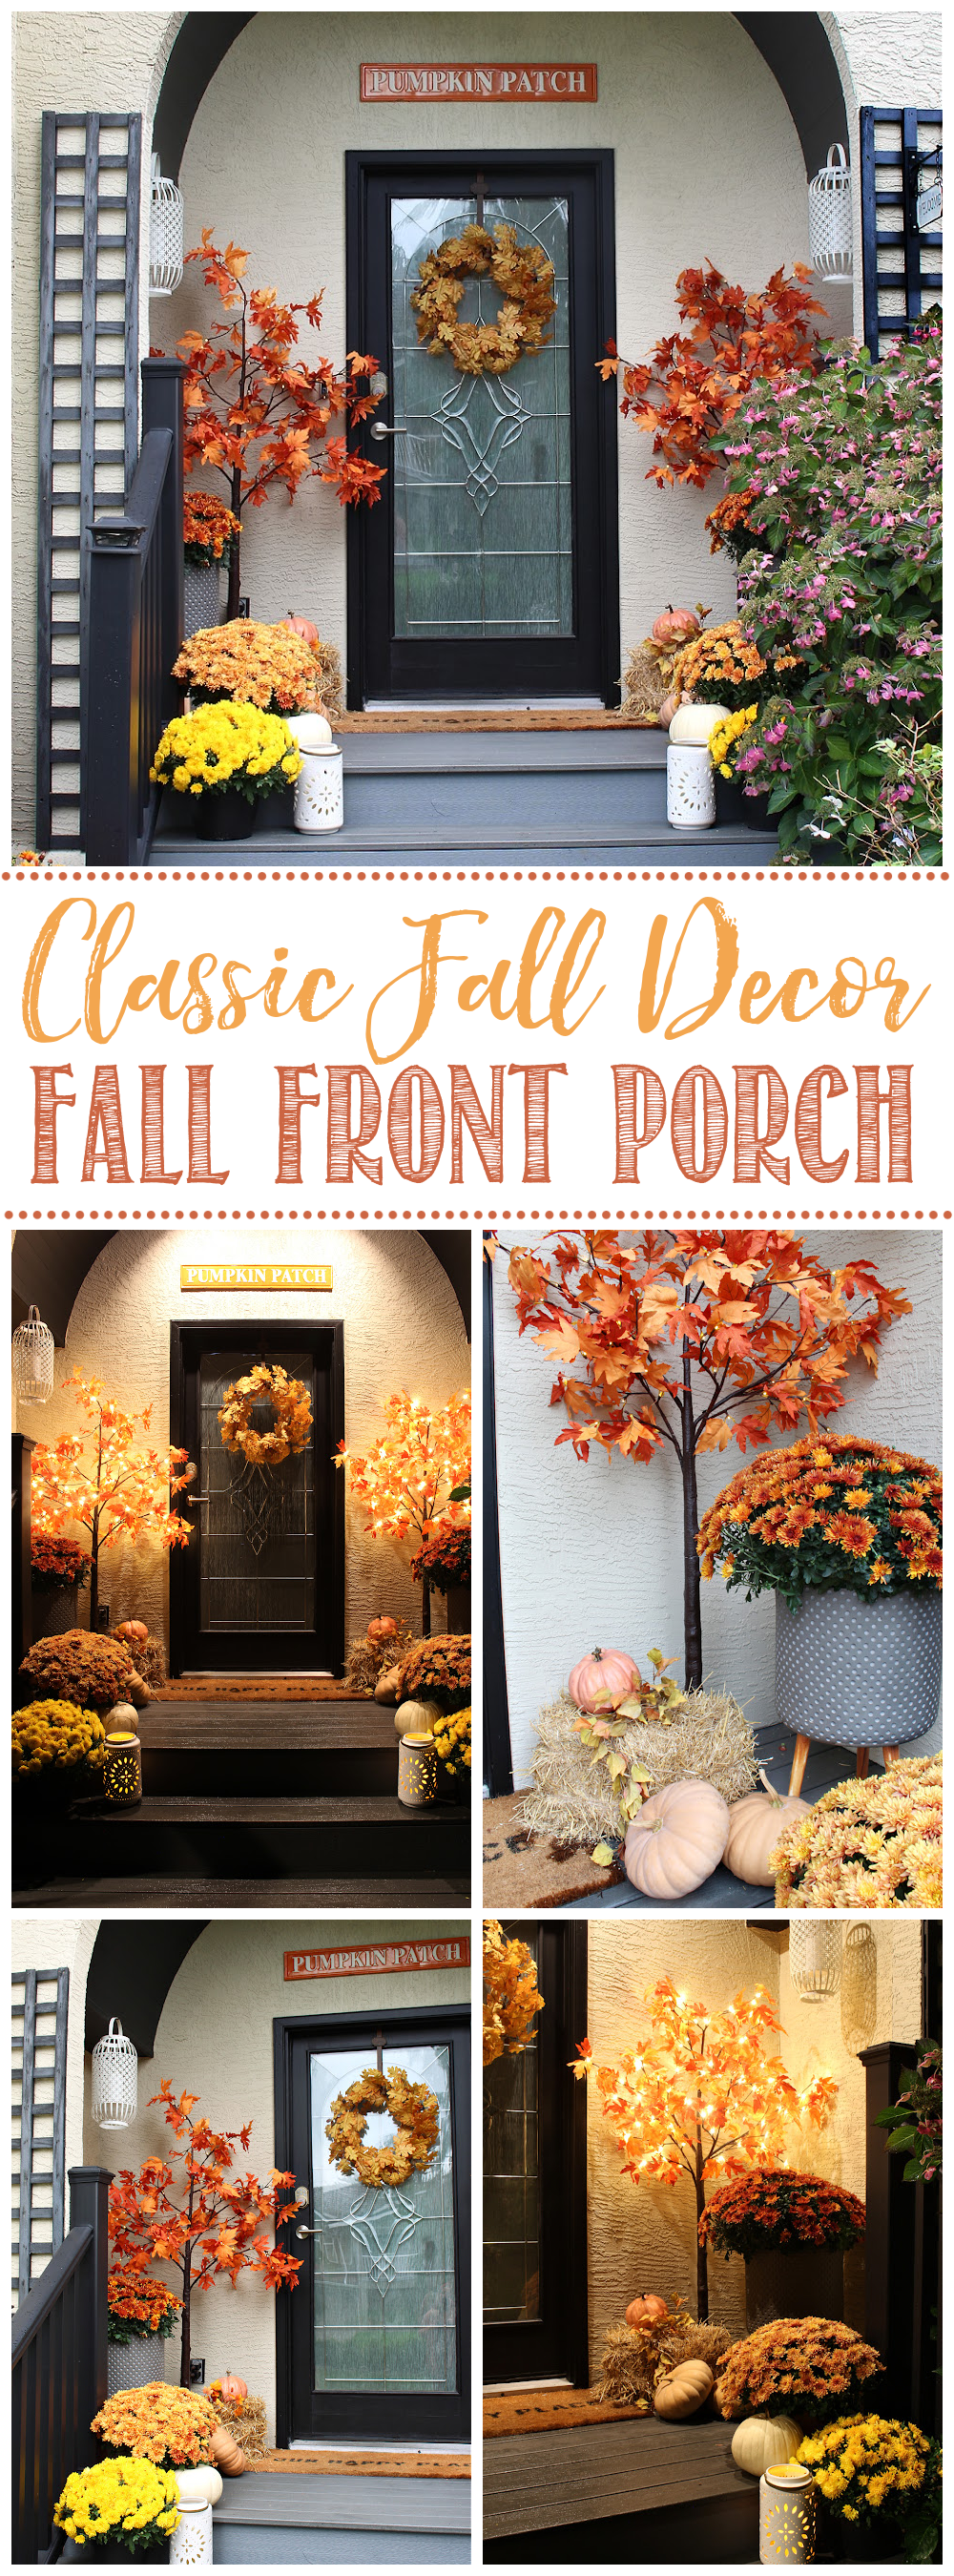 Fall front porch with mums, pumpkins and lighted trees.